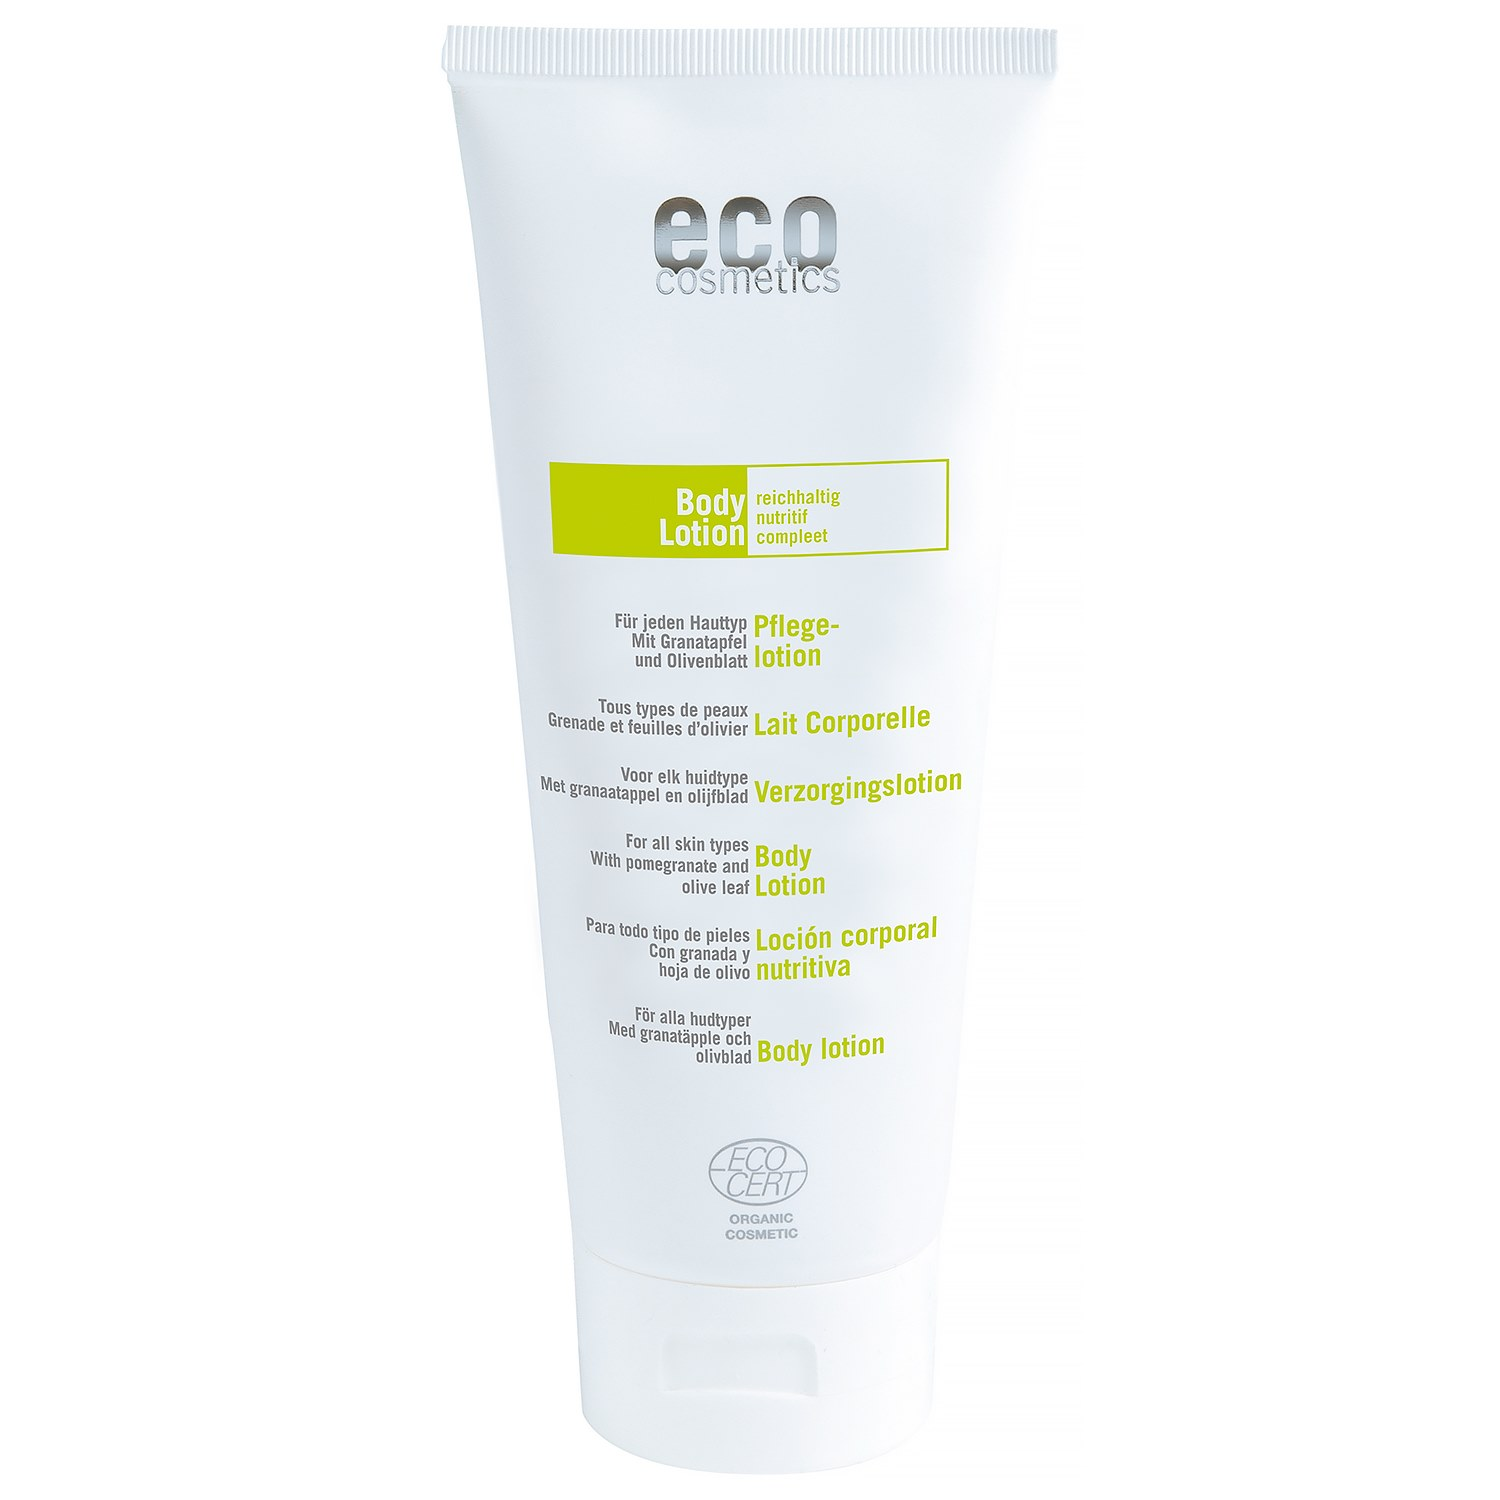 Naturlig body lotion